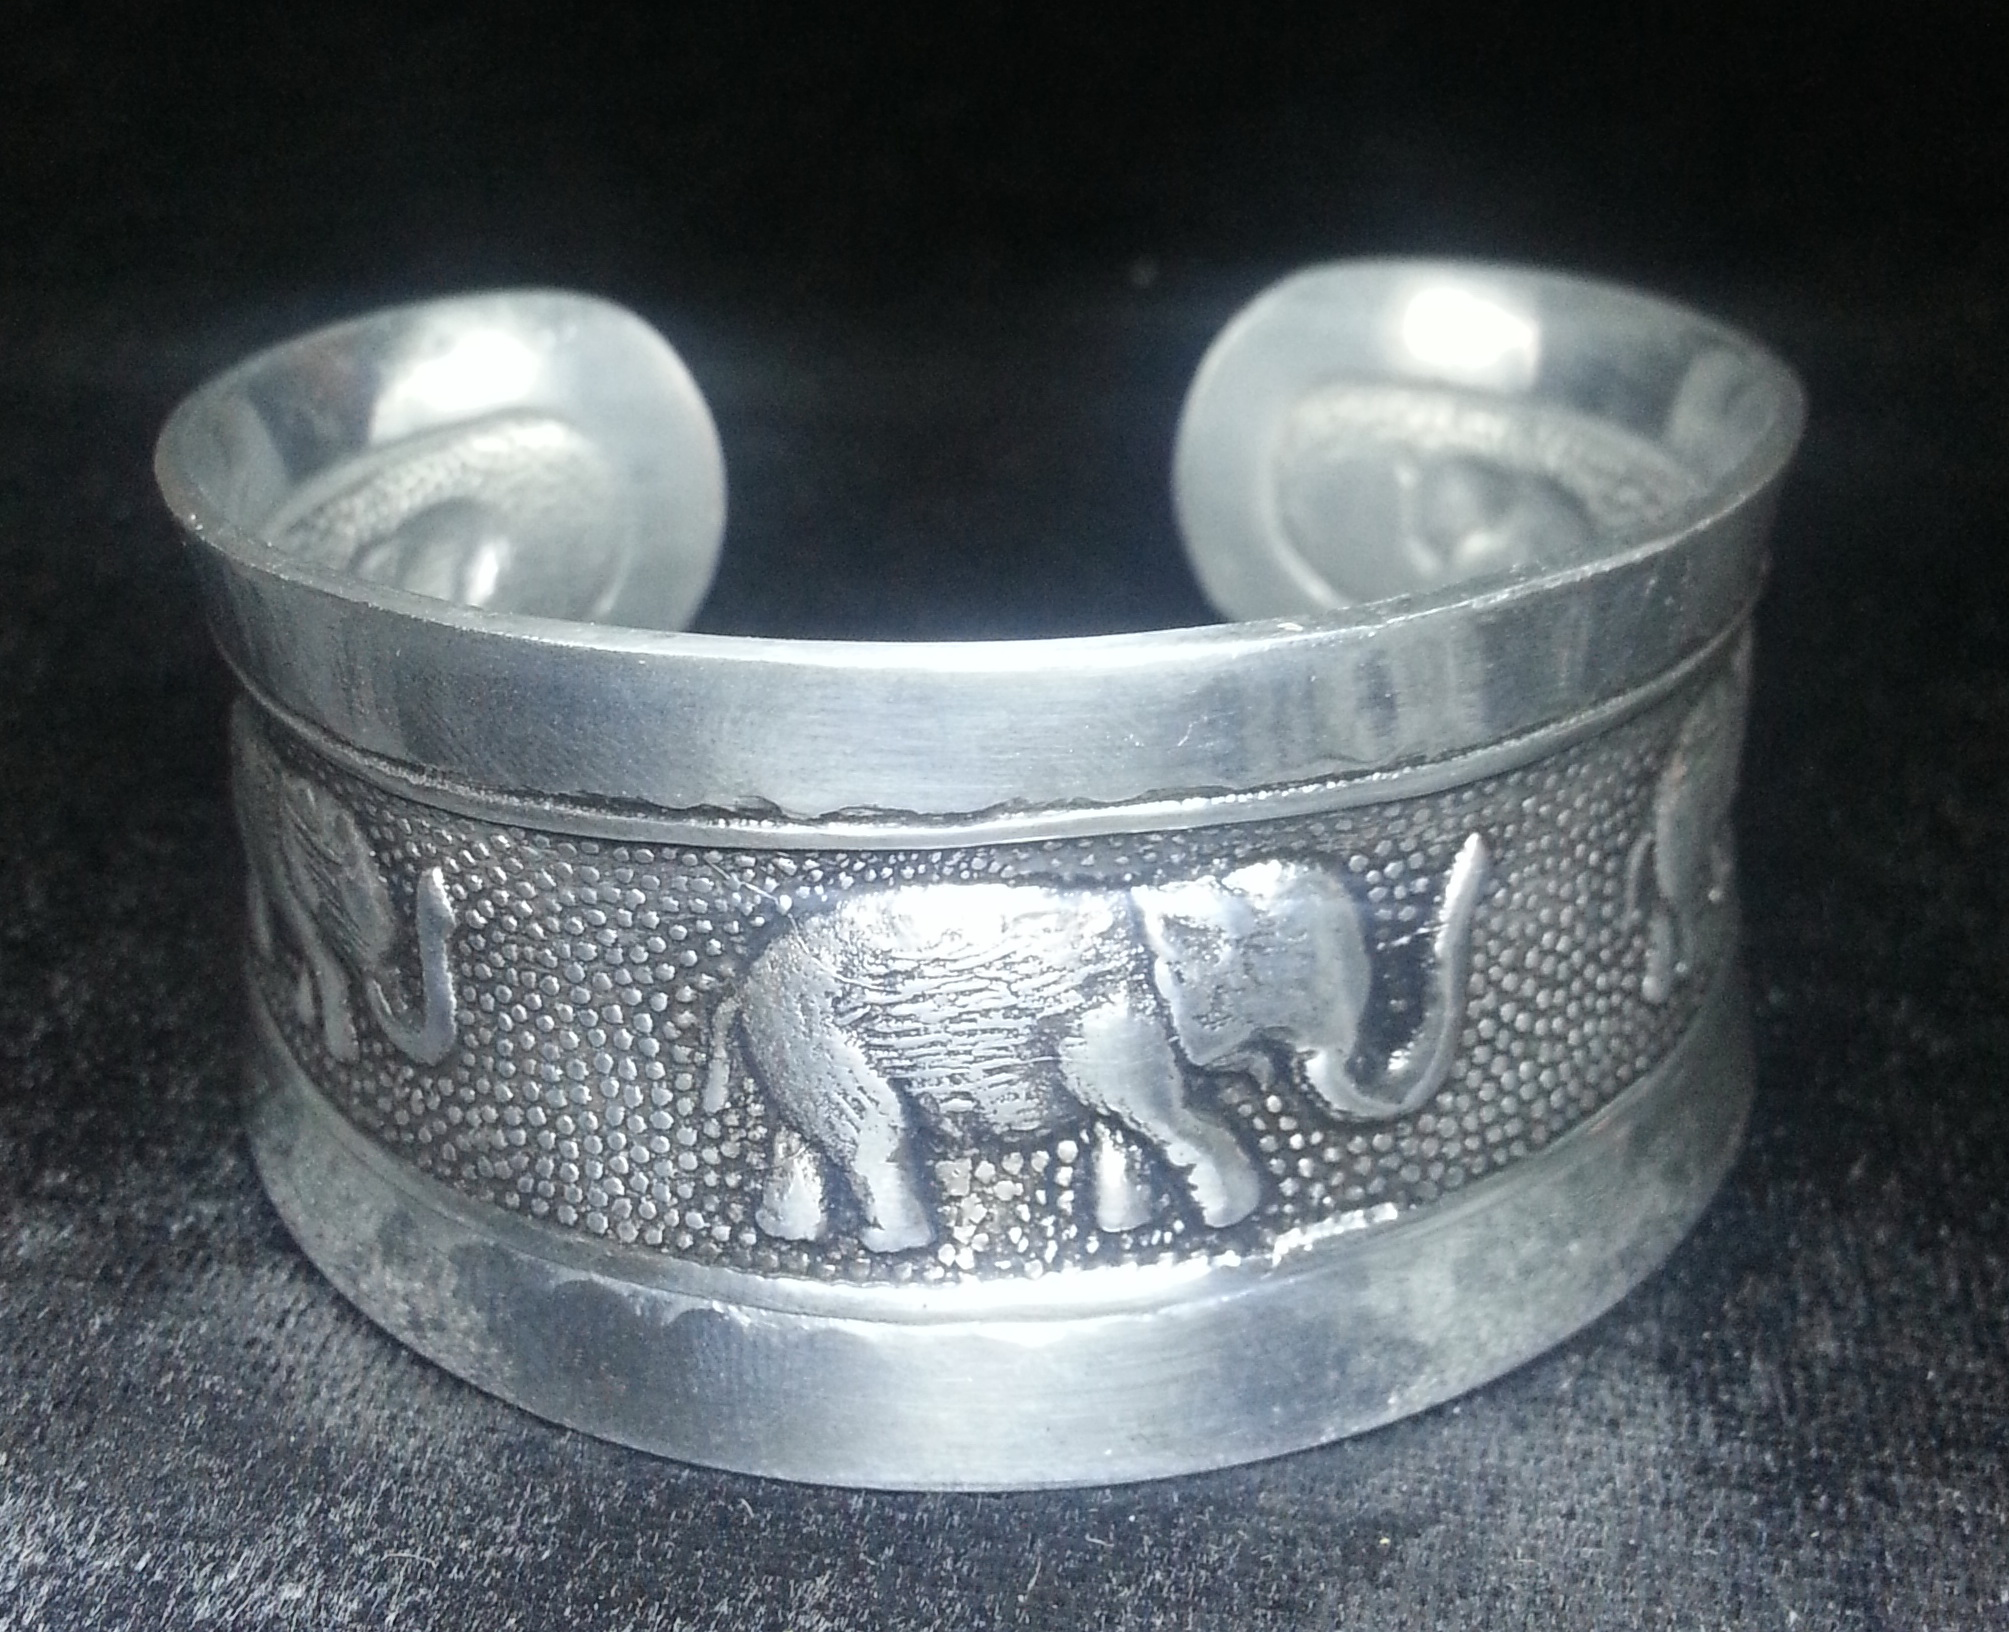 gothic_stainless_steel_punk_elephant_cuff_bangle_bracelets_silver_color_men_women_biker_2_bracelets_4.jpg